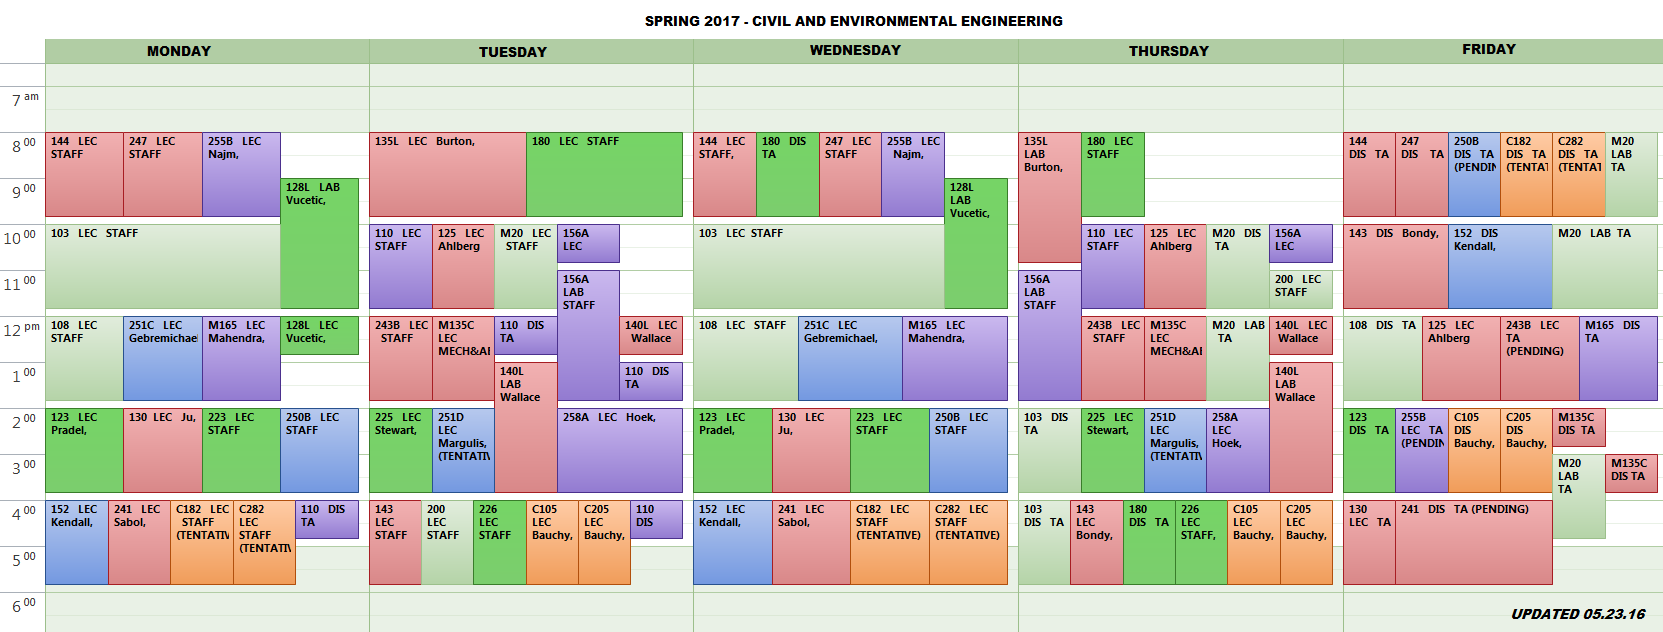 Ucla Calendar.Schedule Of Classes Ucla Examples And Forms